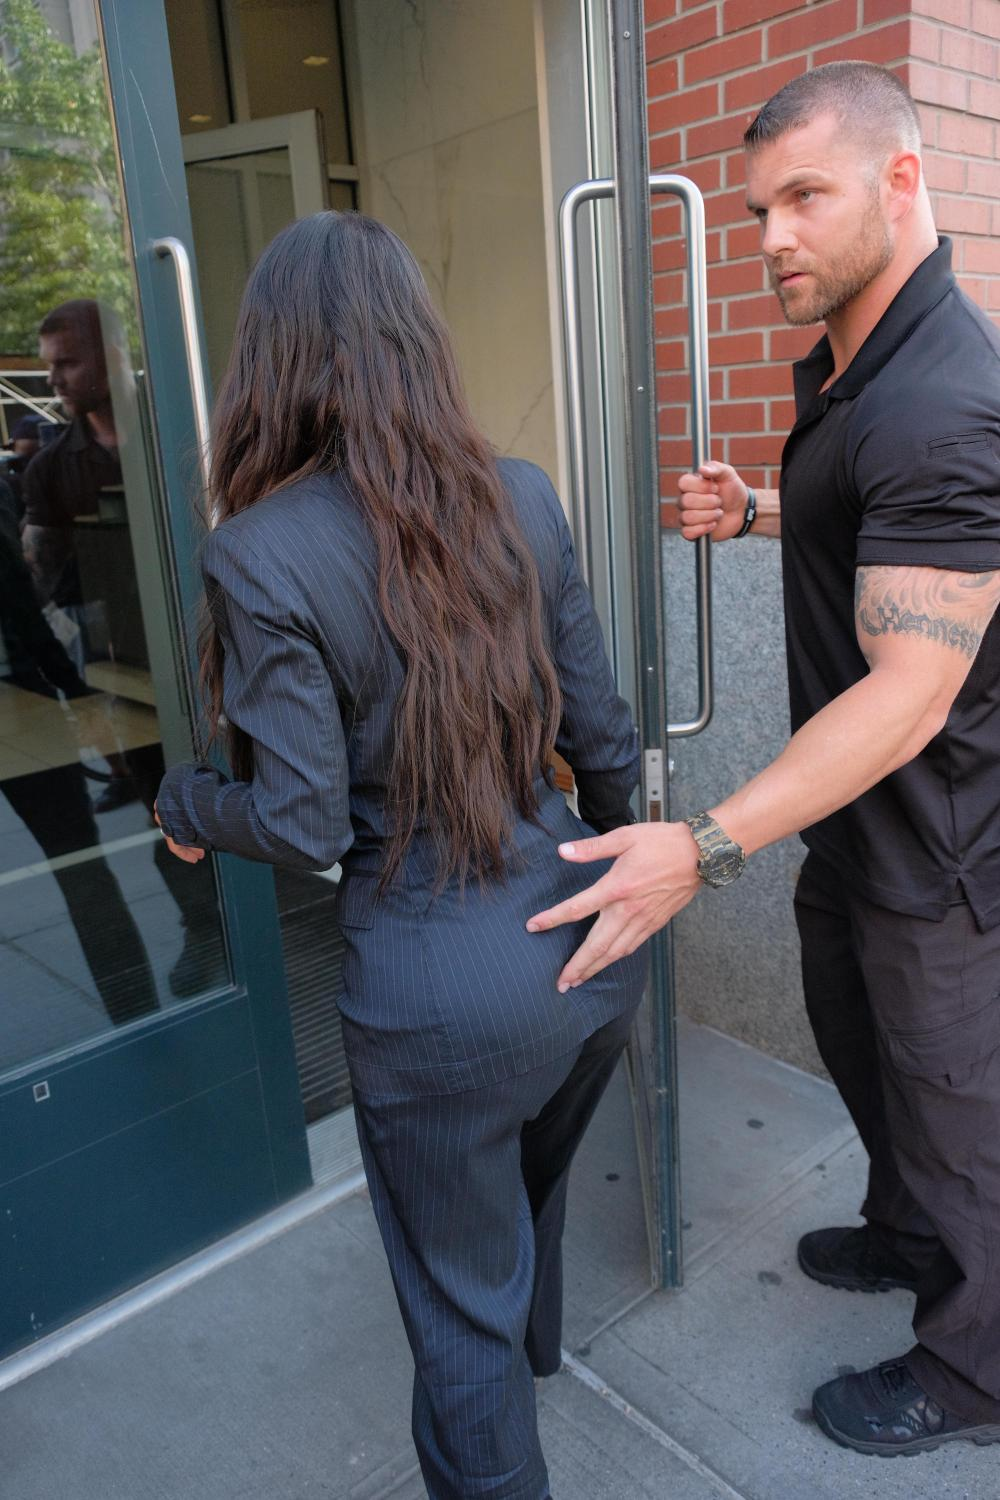 Kim Kardashian's bodyguard put his hand on her bum as he escorted her into her hotel yesterday